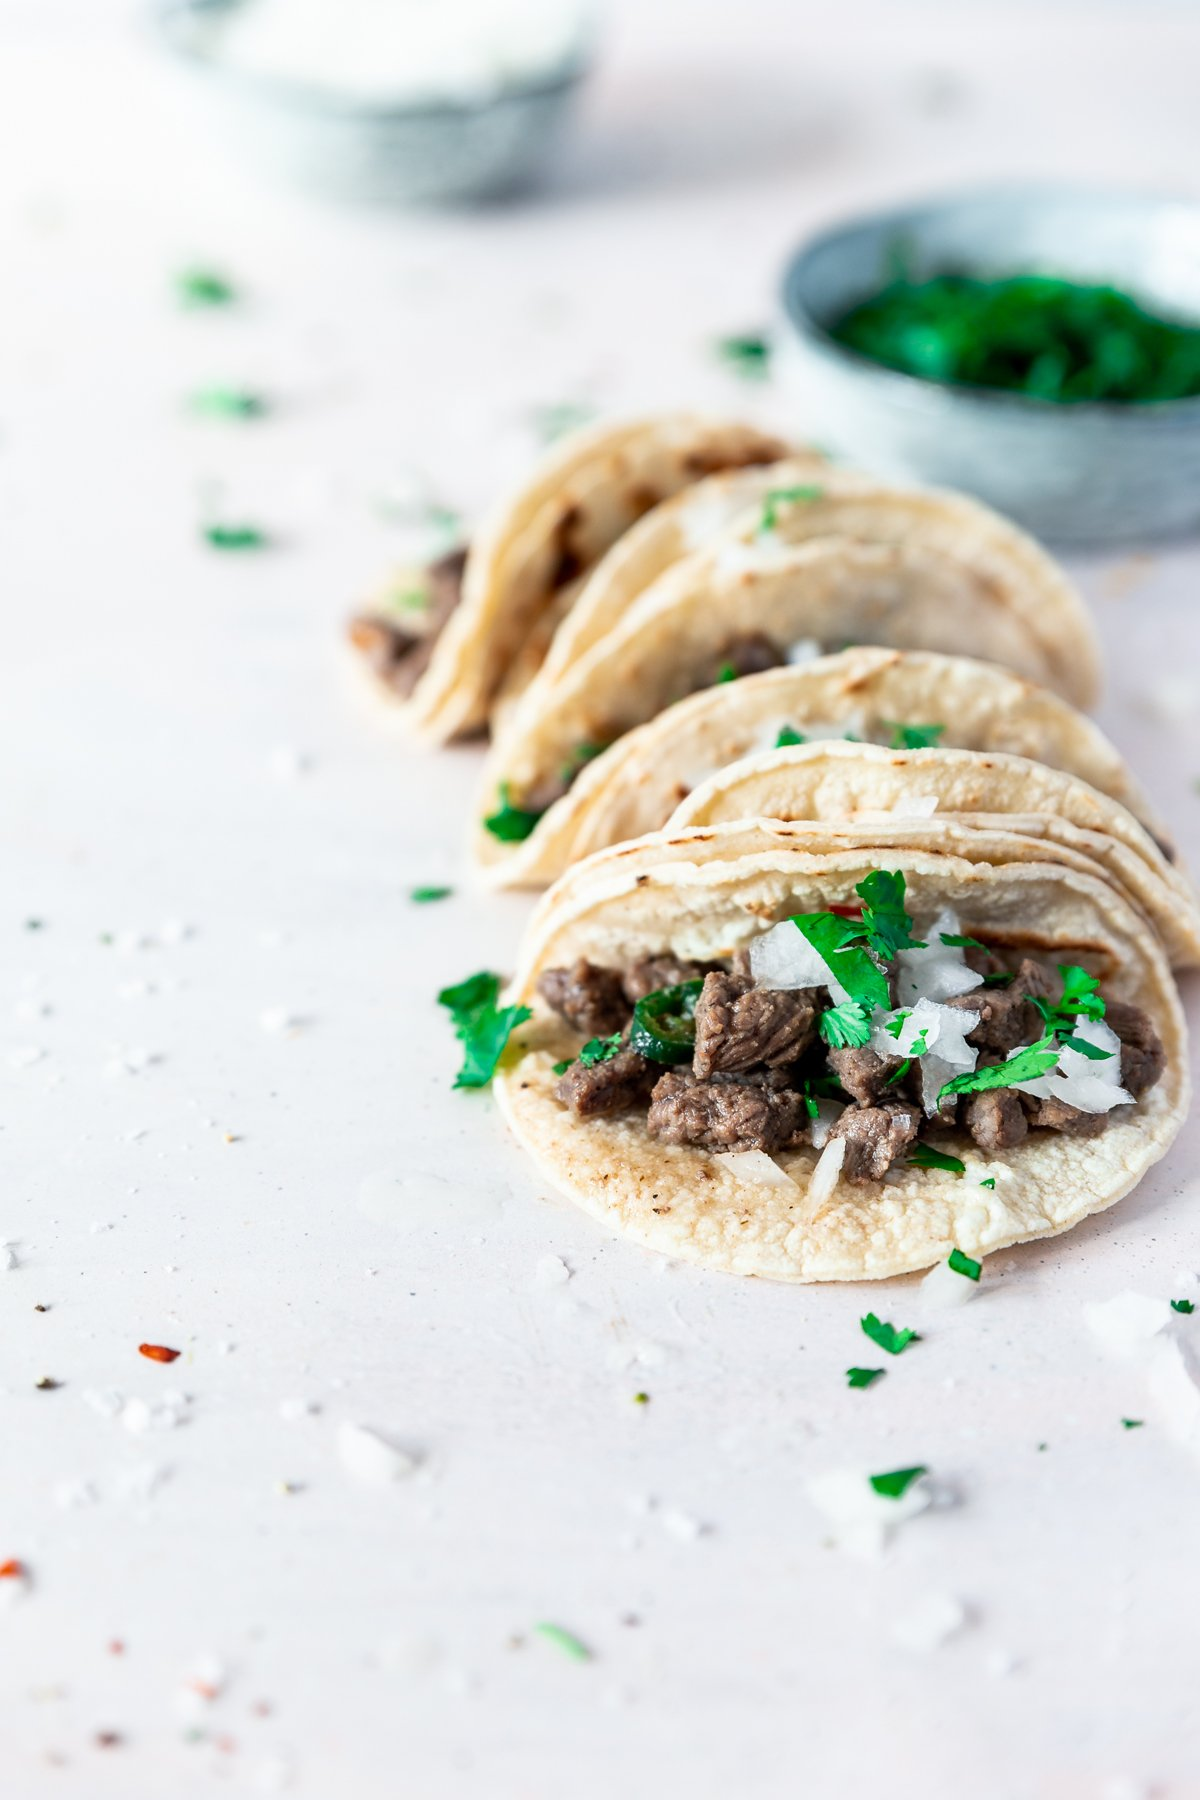 forty-five degree angle view of carne asada mexican street tacos sprinkled with onion and cilantro, aligned on the left side of the image. behind the easy mexican recipe is a bowl of cilantro and further back is a bowl of onion.